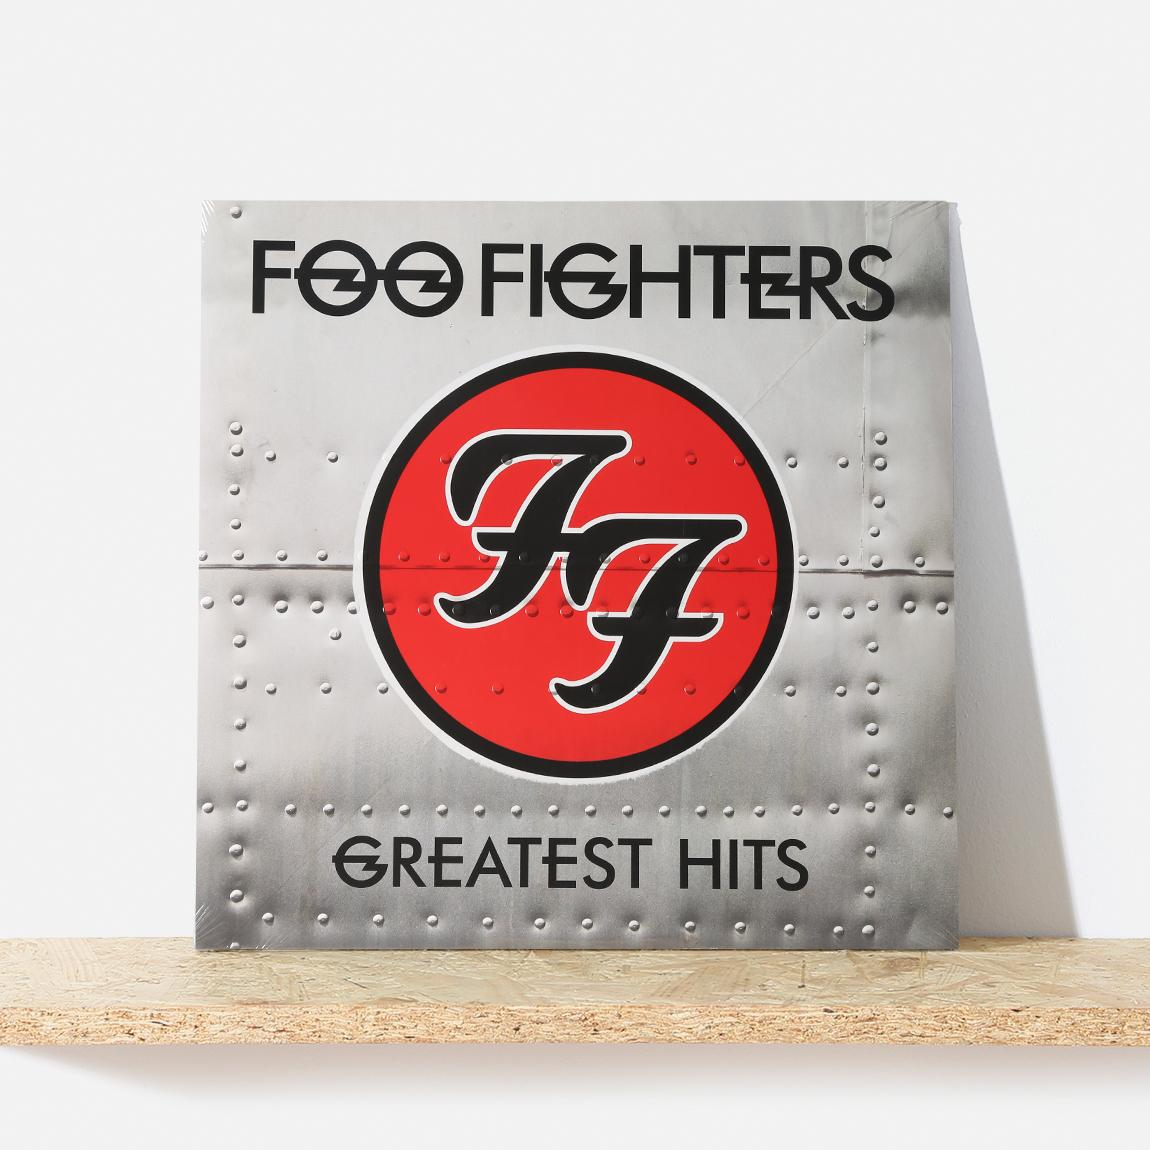 Foo Fighters : Best Ever Albums